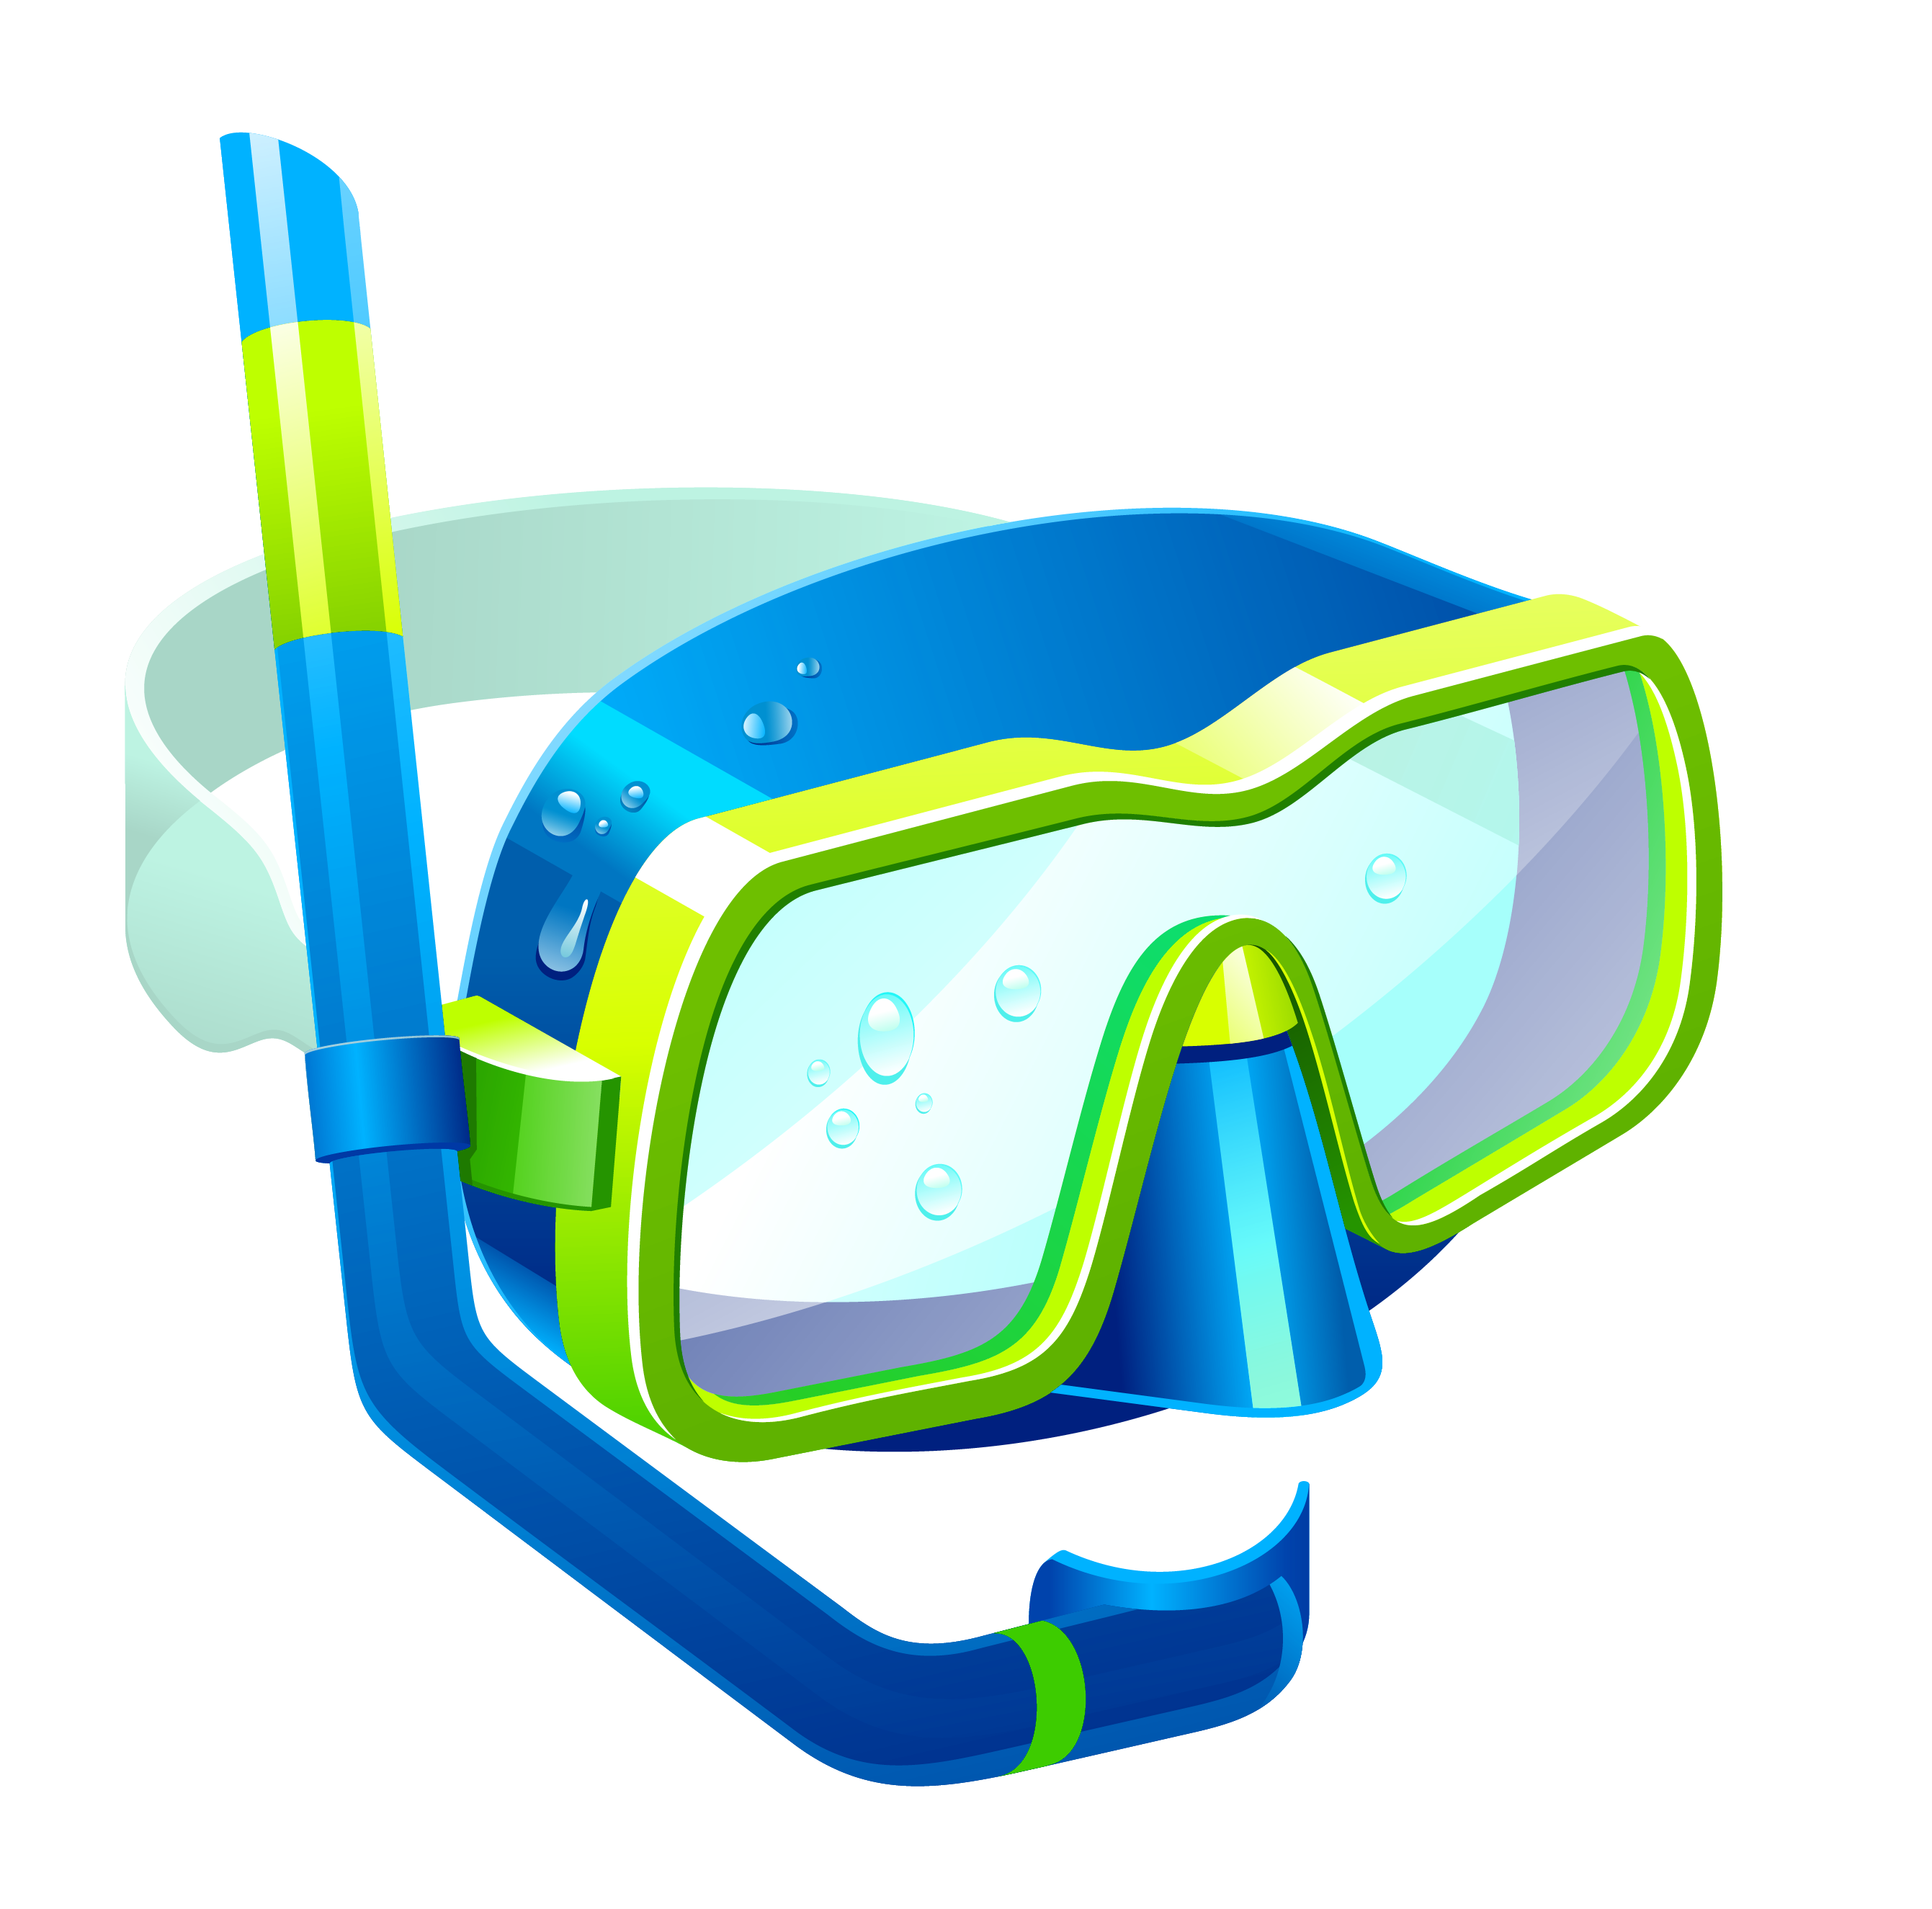 Mask and snorkel clipart.